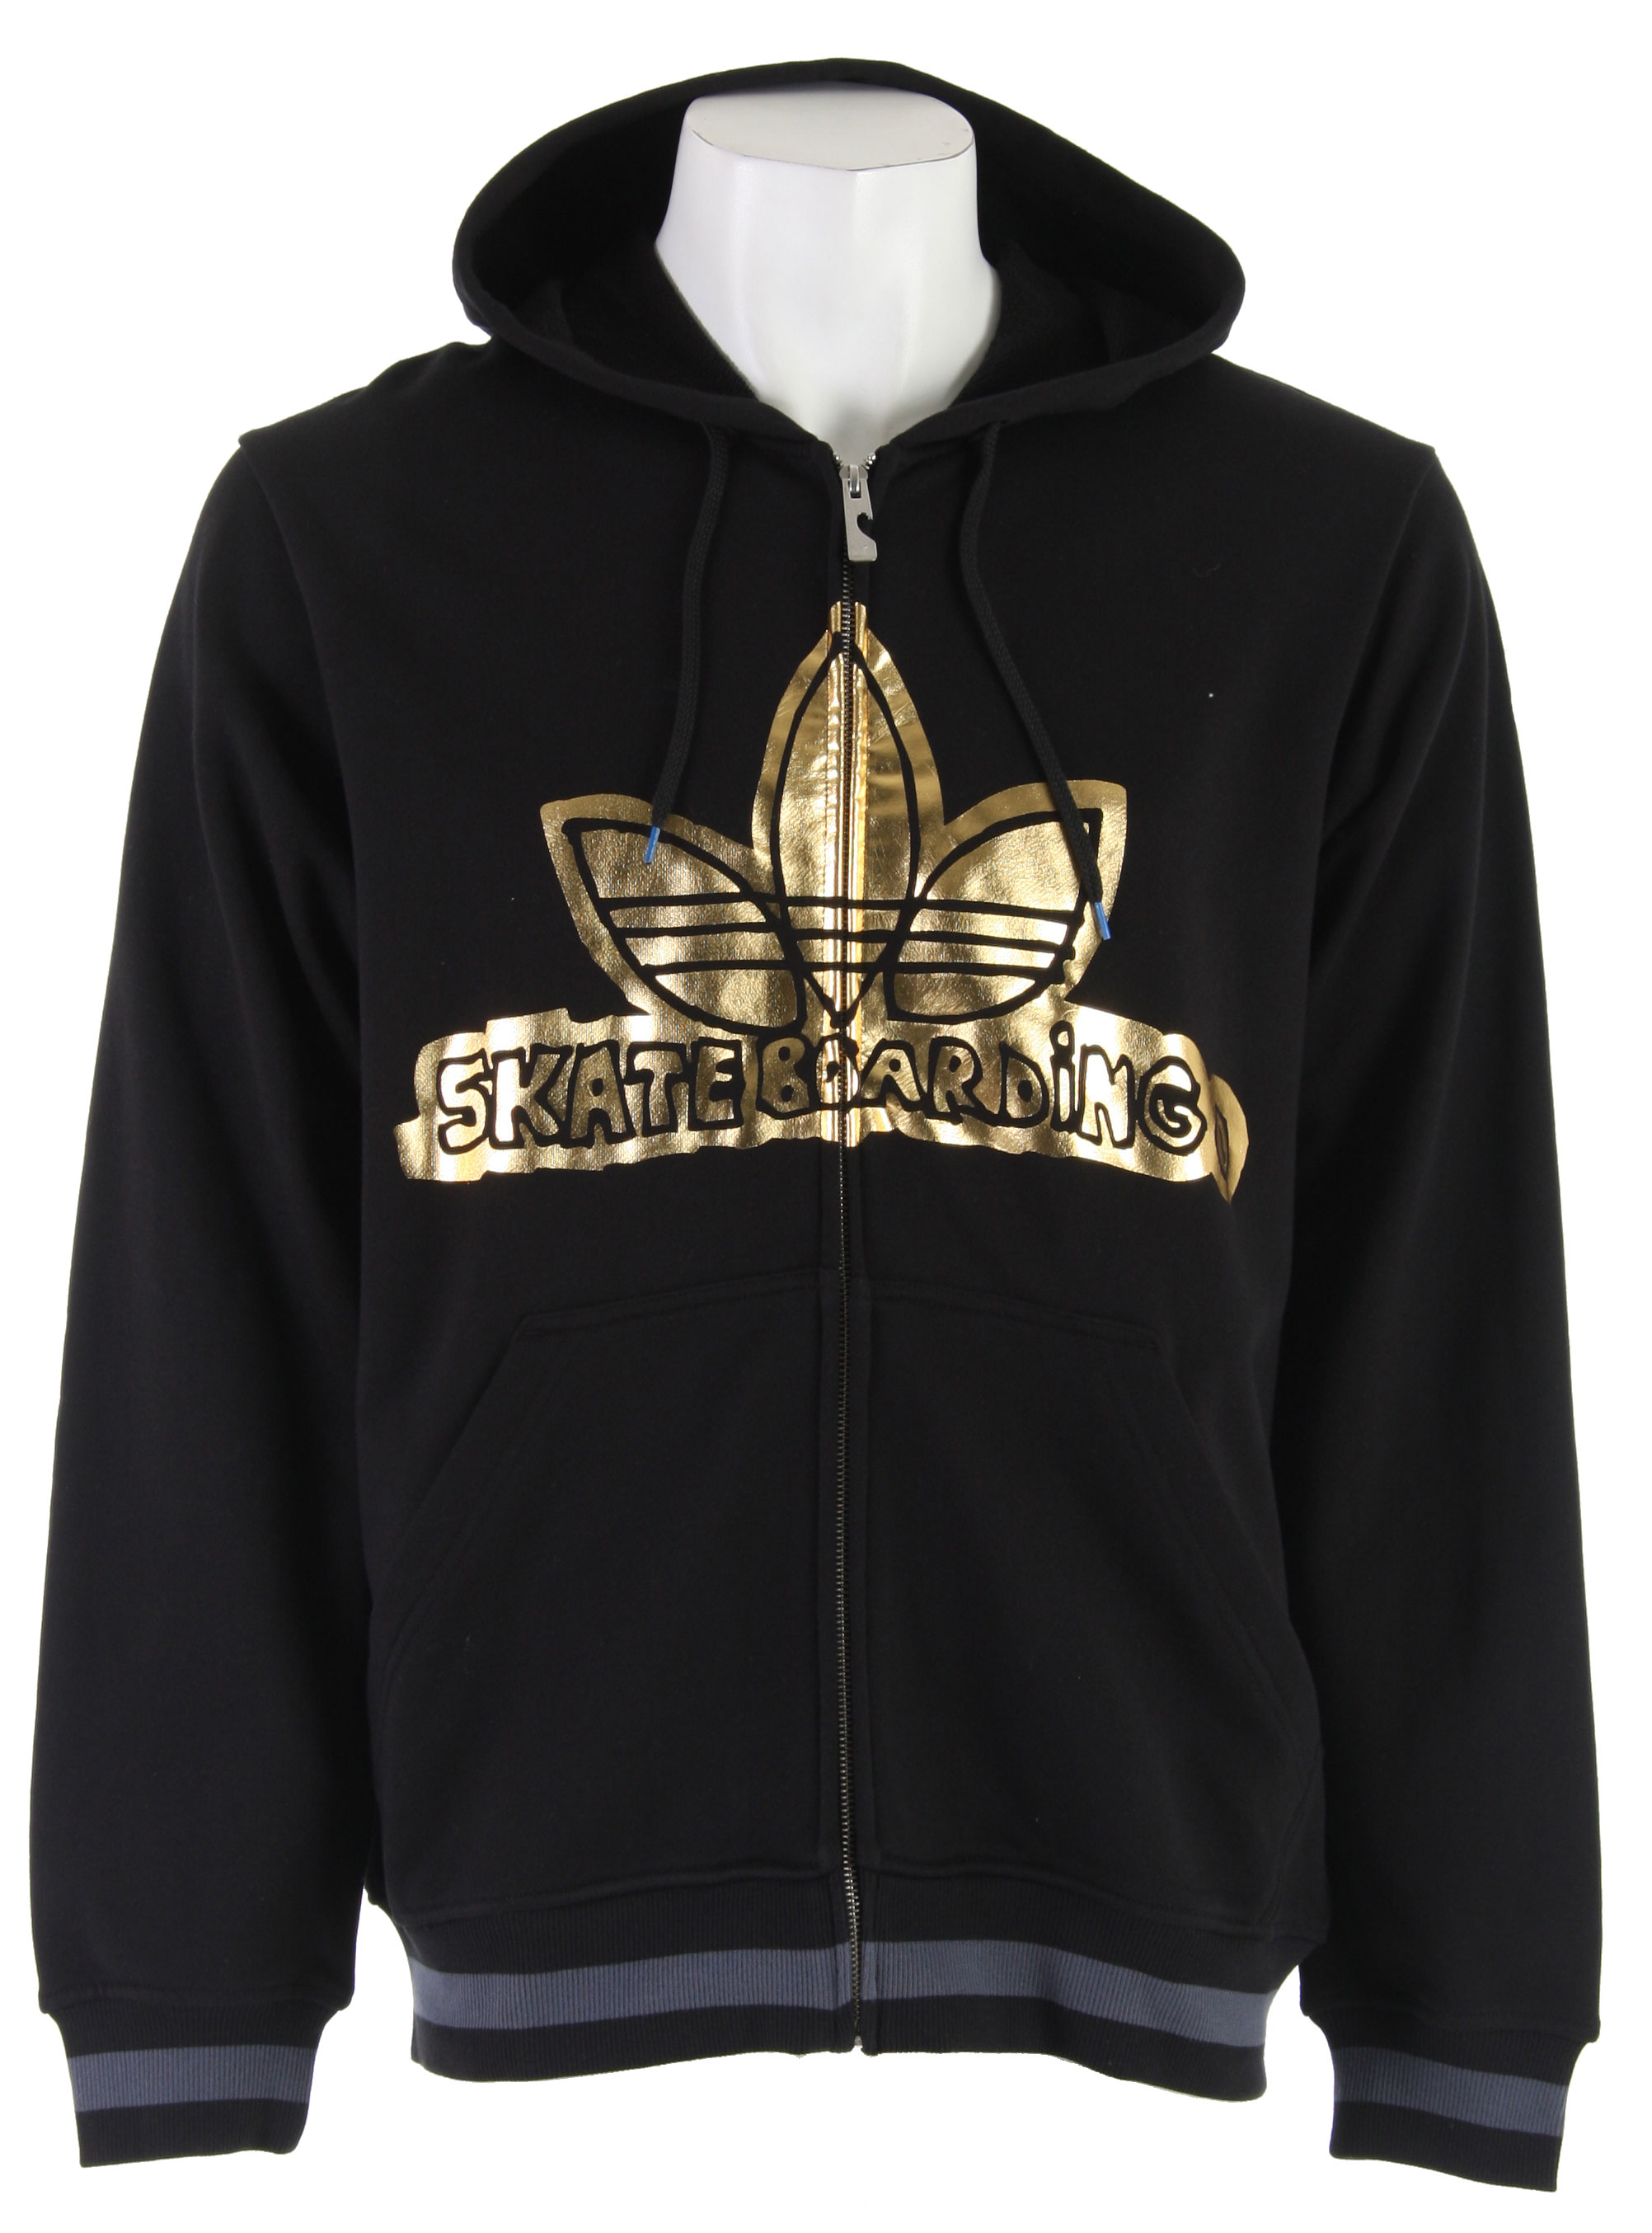 Fitness Is Regular fit with a full zipper. Drawstring hood and a large Adidas logo on the chest. Front pouch pockets. This hoodie is 80% cotton/20% poly. - $38.95